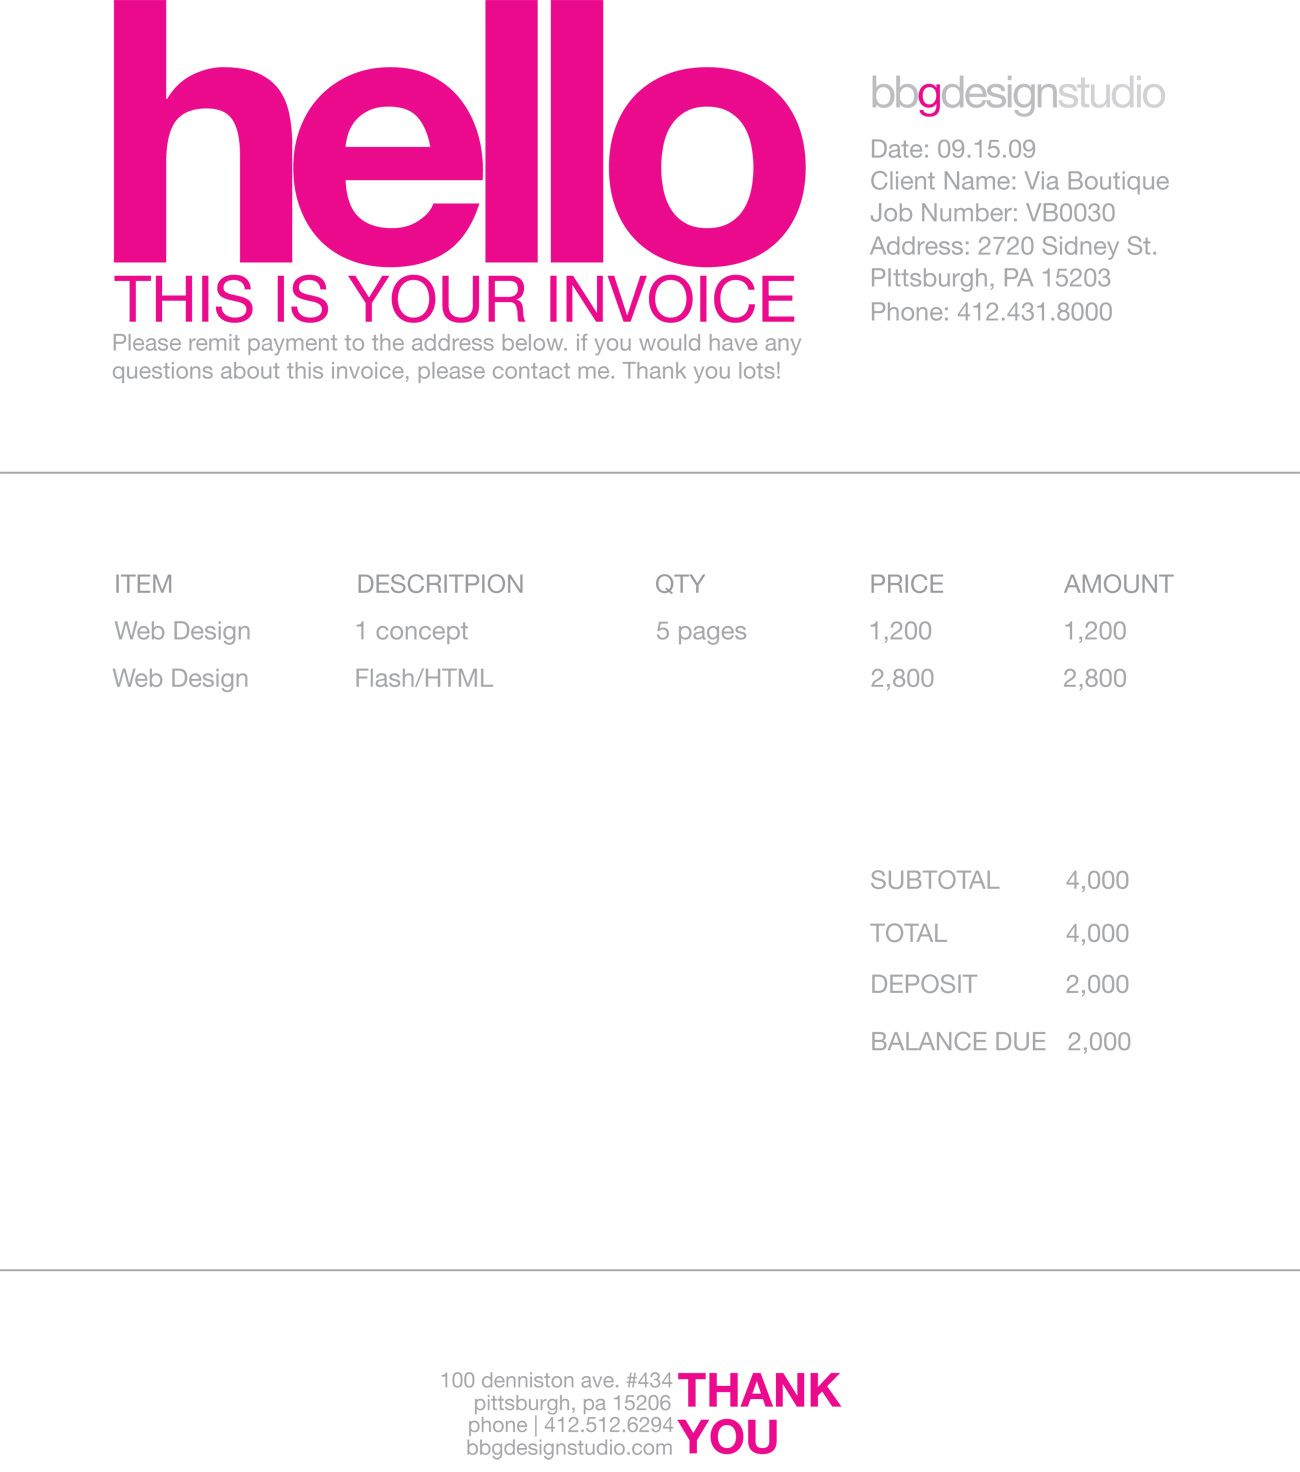 Atvingus  Outstanding  Images About Invoice Design On Pinterest With Fetching What Is A Customer Invoice Besides Easy Invoice Software Free Download Furthermore Excel Sales Invoice Template With Delectable Format Of An Invoice Also Self Employment Invoice In Addition Free Invoice And Quote Software And Excel Spreadsheet Invoice As Well As Absolute Invoice Finance Additionally Invoice Duplicate Book From Pinterestcom With Atvingus  Fetching  Images About Invoice Design On Pinterest With Delectable What Is A Customer Invoice Besides Easy Invoice Software Free Download Furthermore Excel Sales Invoice Template And Outstanding Format Of An Invoice Also Self Employment Invoice In Addition Free Invoice And Quote Software From Pinterestcom